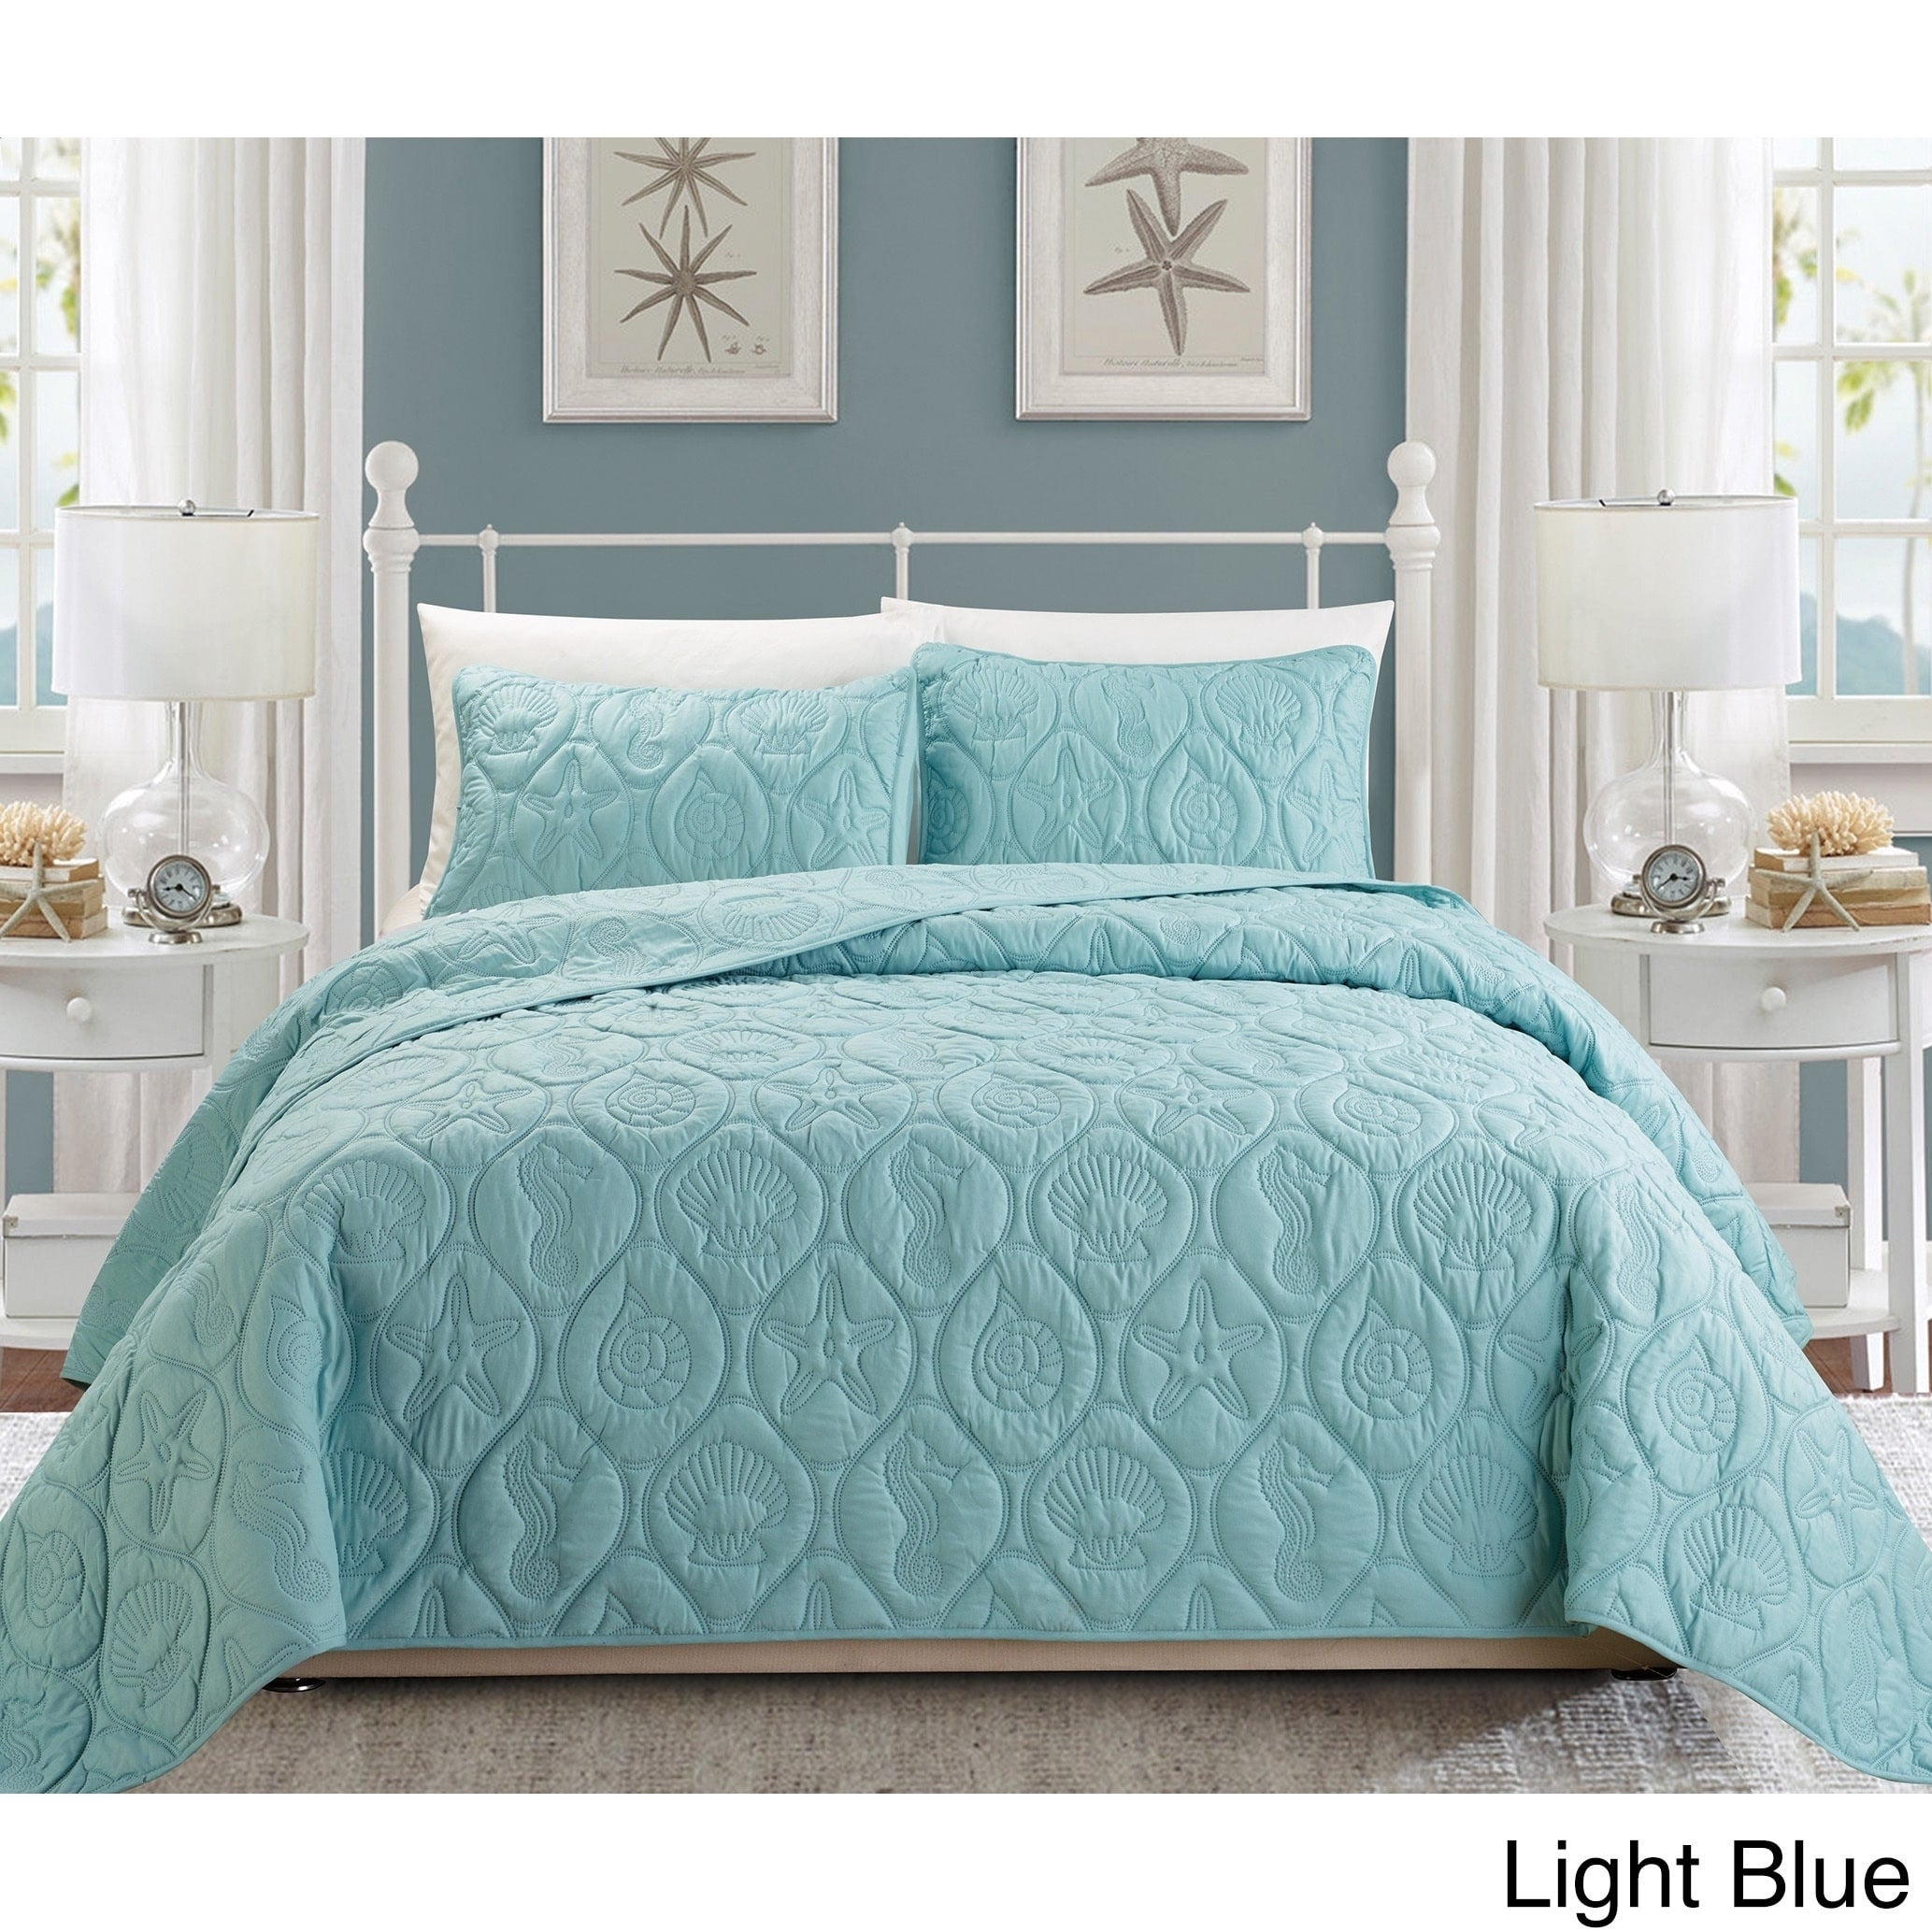 quilted oversizedoverfilled alisa by river product hayneedle comforter overfilled duck oversized piece textile queen set master cfm sets